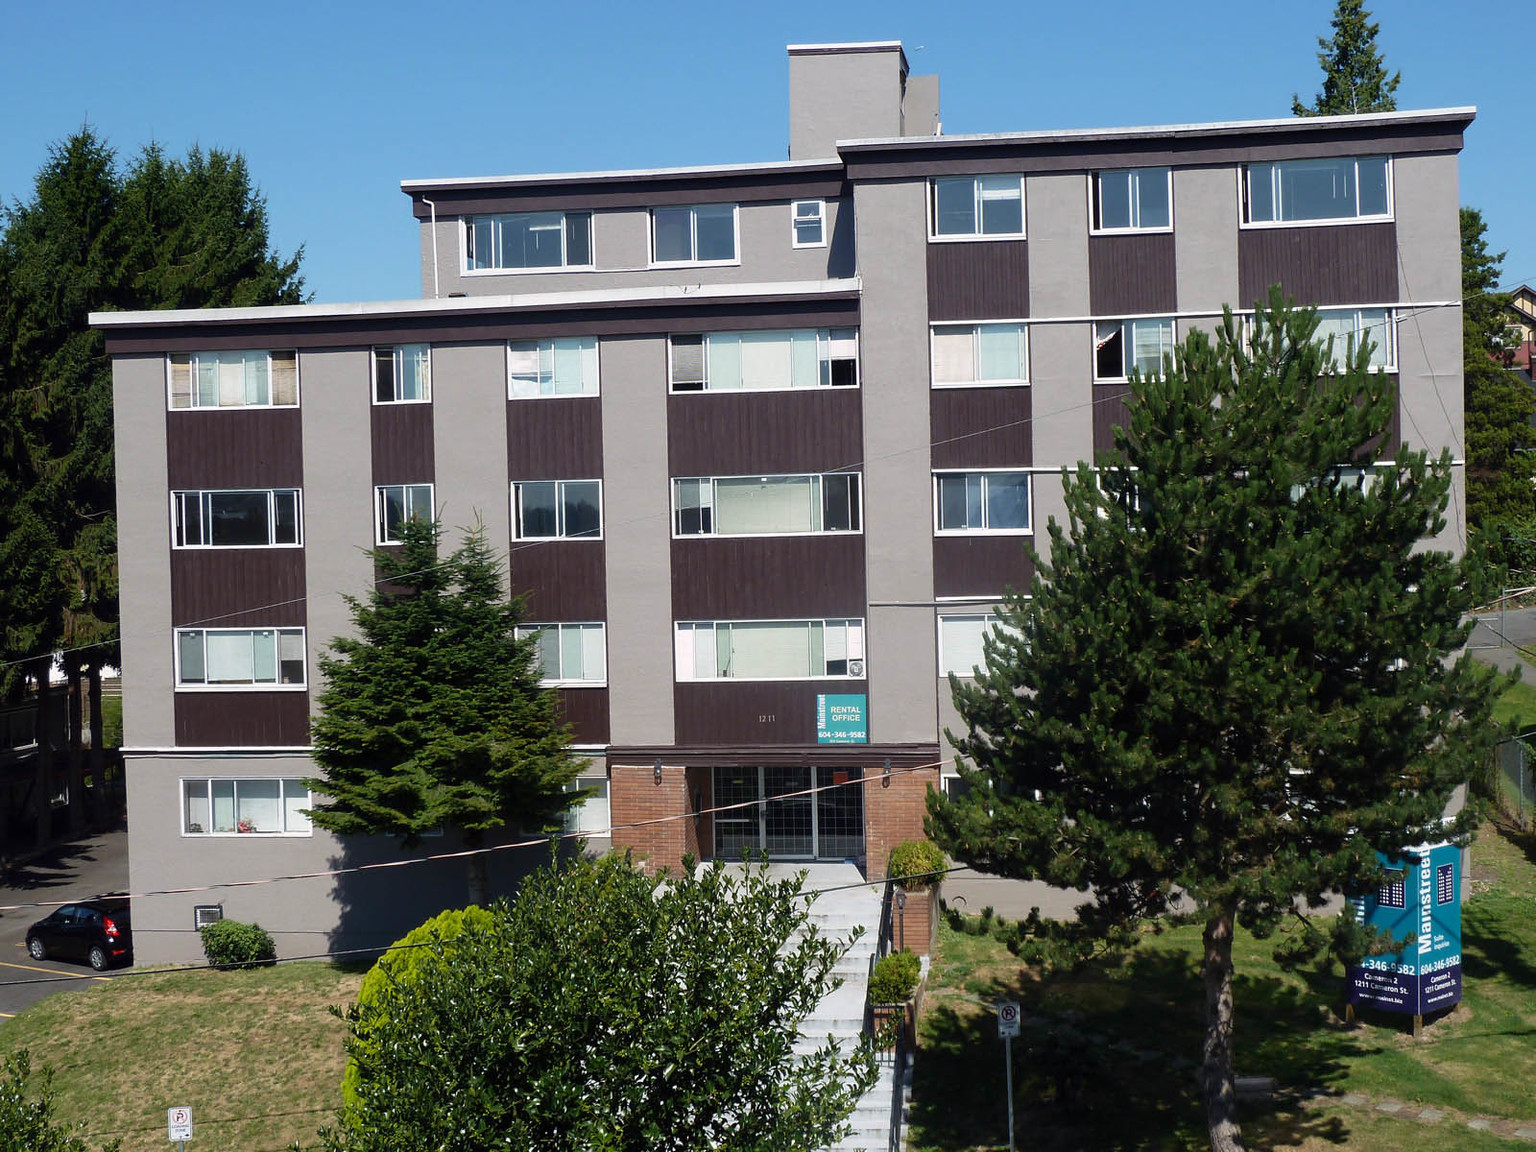 1211 Cameron St., New Westminster, BC - $1,750